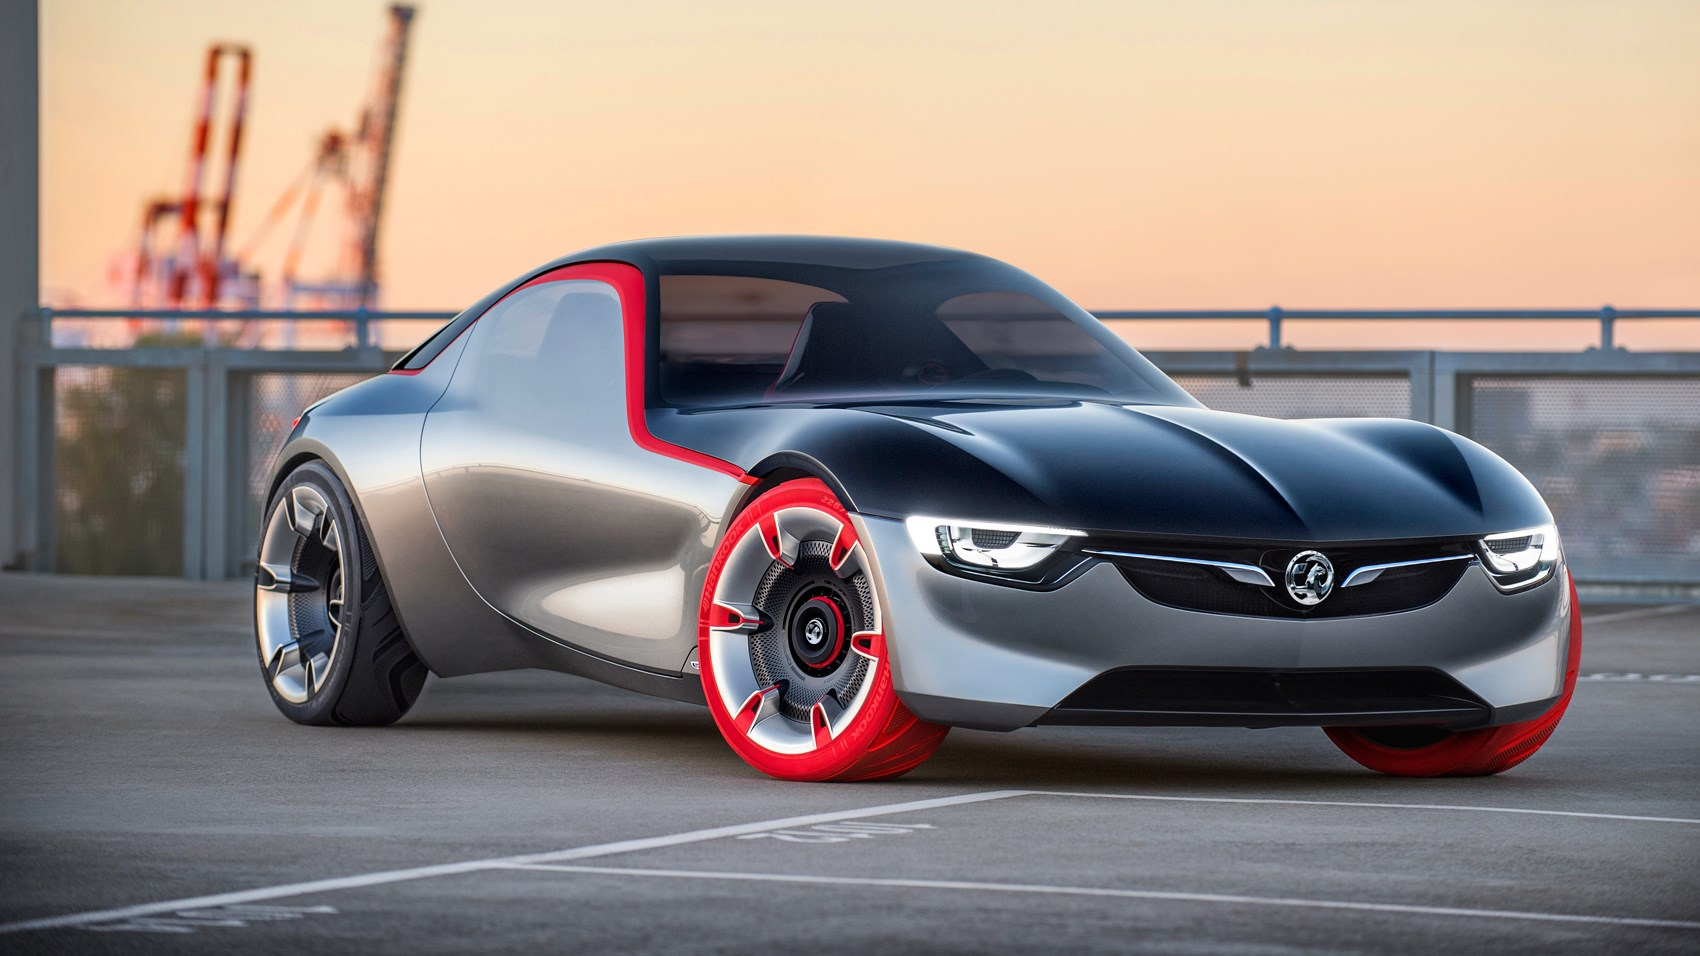 Opel Gt Concept Revealed At Geneva 2016 Vauxhall S Sports Car Surprise